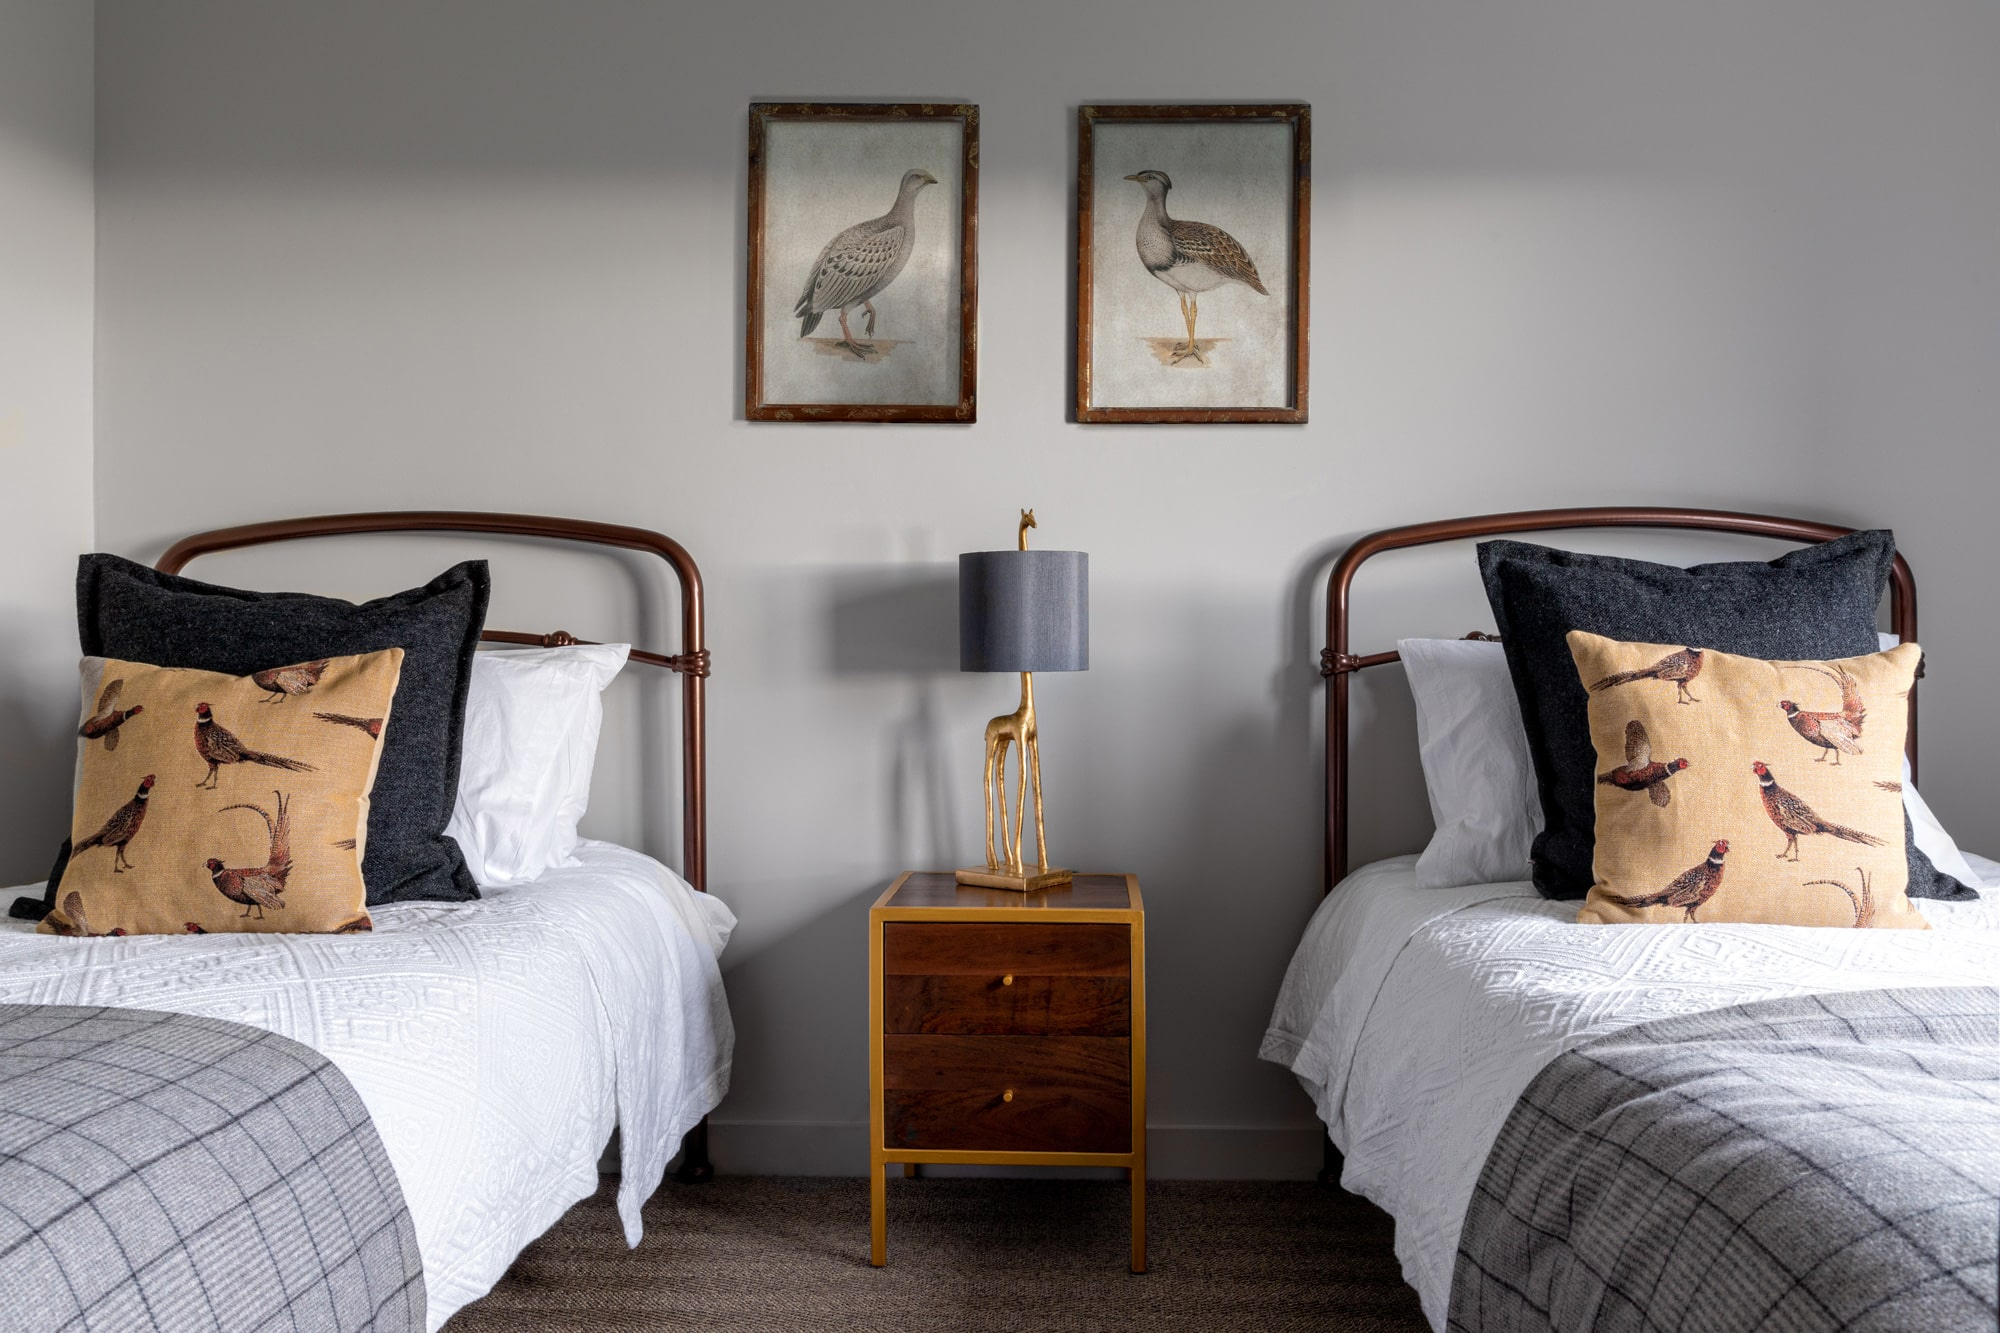 Kids' bedroom: grey walls; 2 single beds; brown and gold beside table in between beds with a lamp in a form of giraffe; two posters with birds on the wall